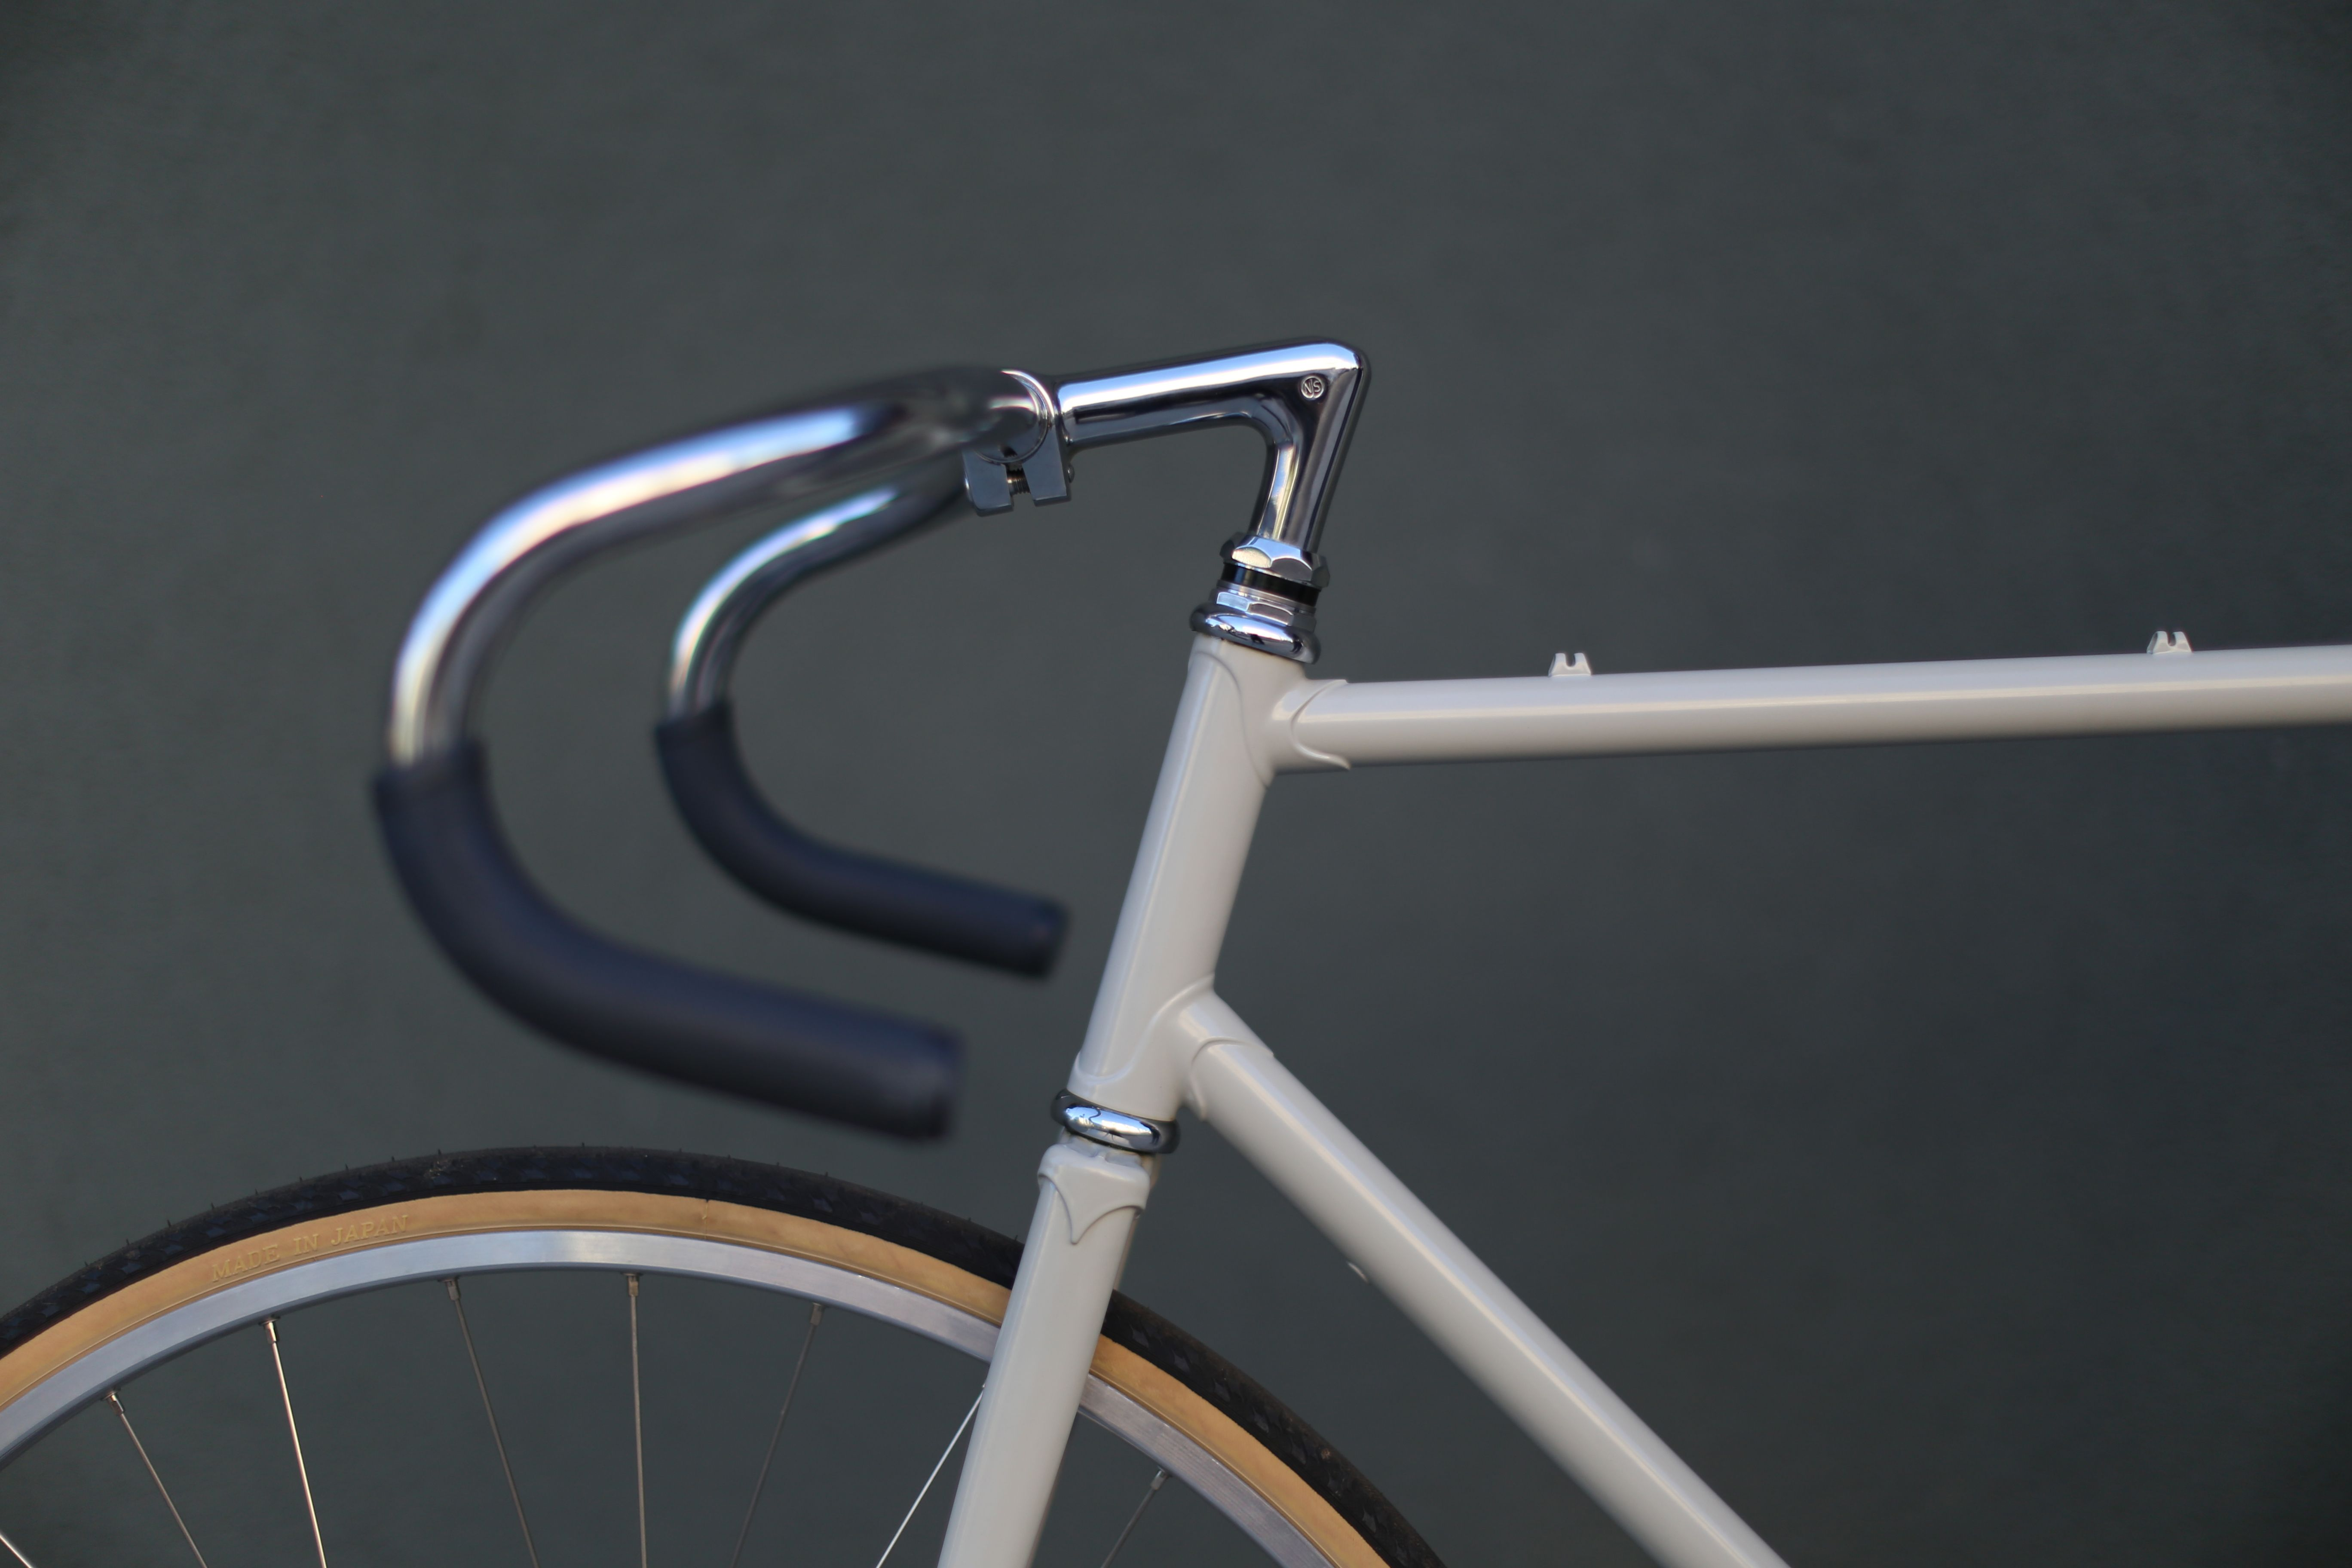 Pin On Lugged Track Frame